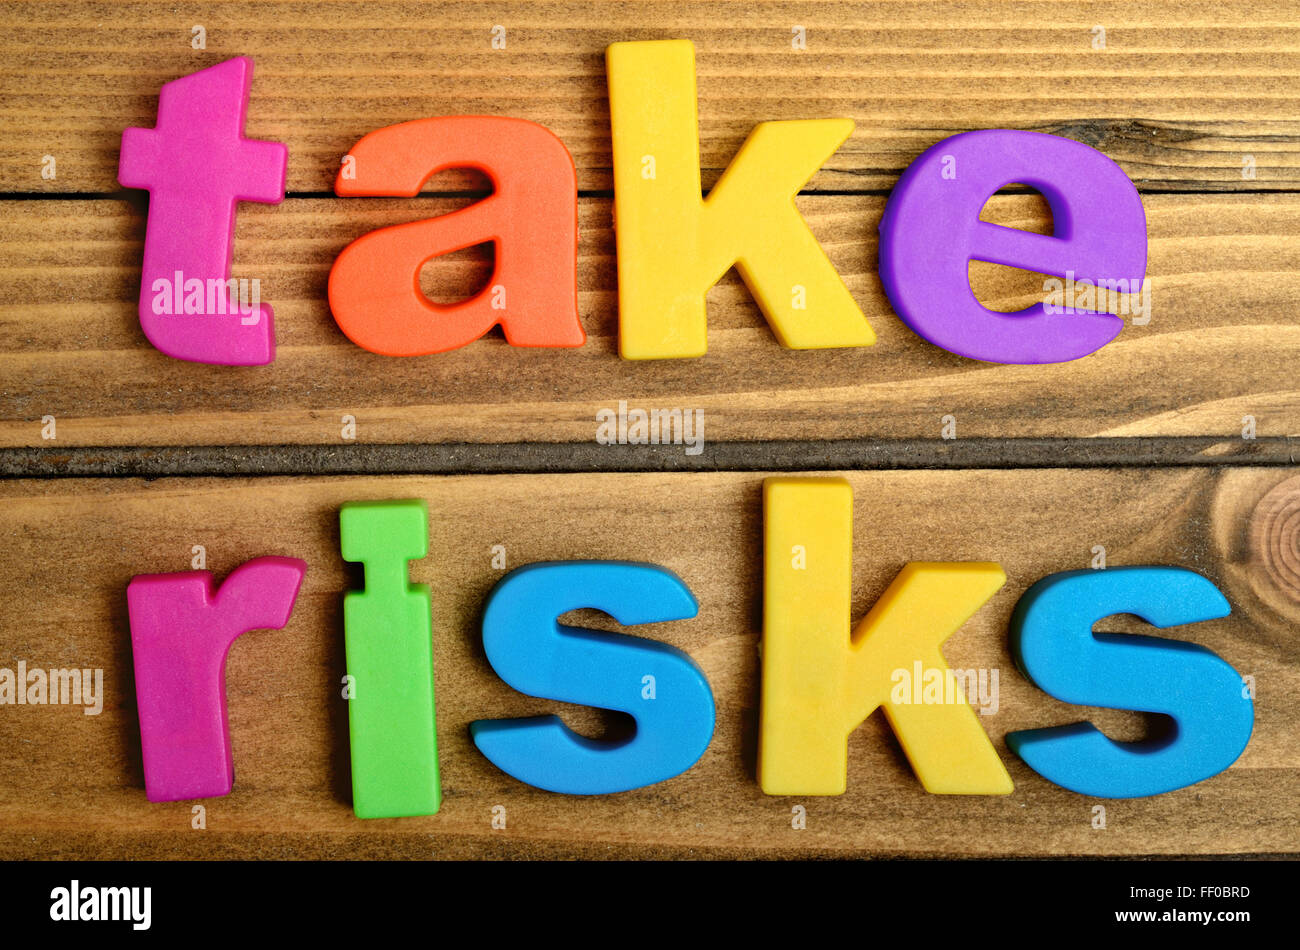 Take risks word on wooden table - Stock Image